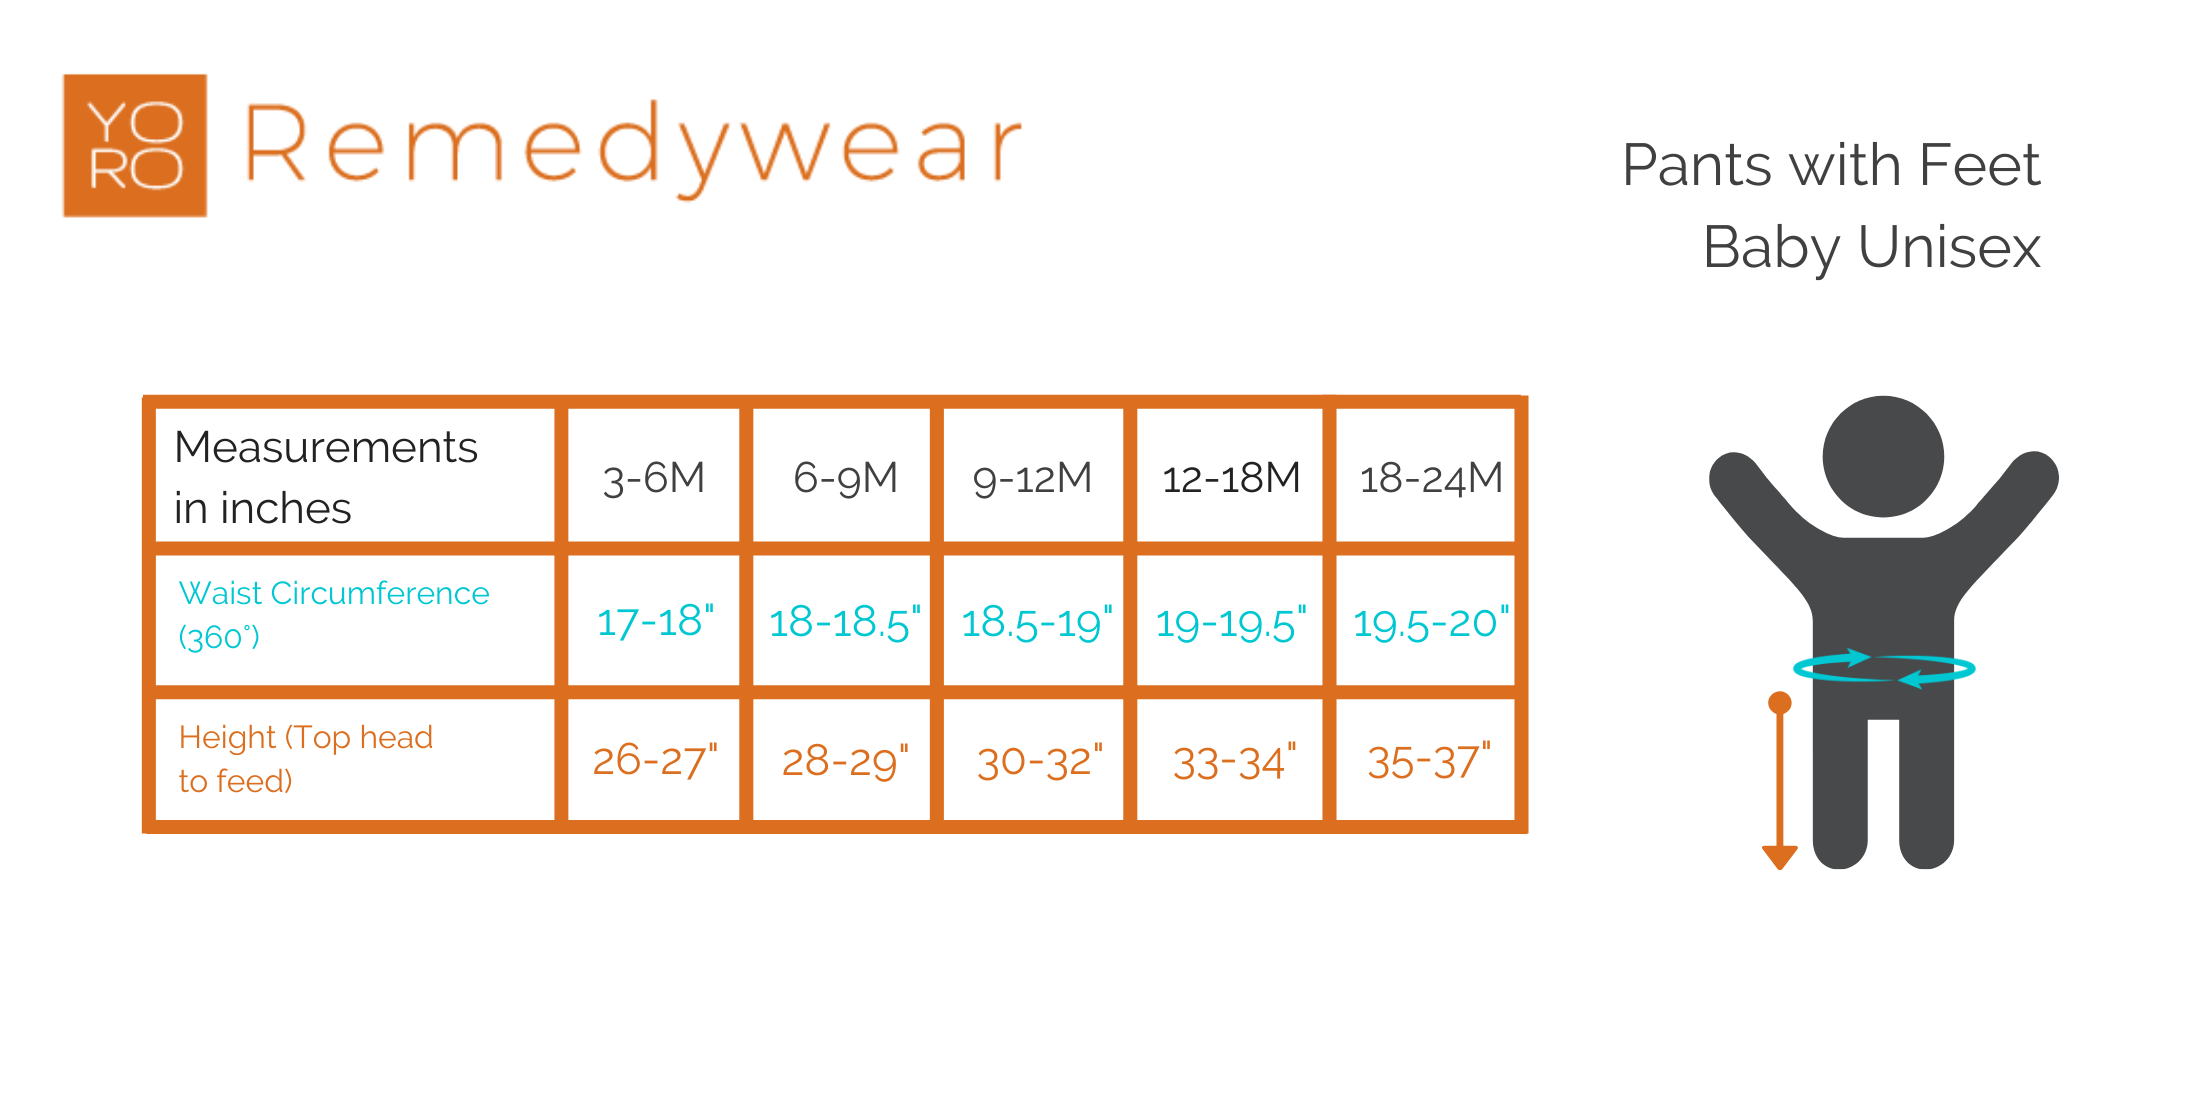 remedywear-baby-pants-sizing.png